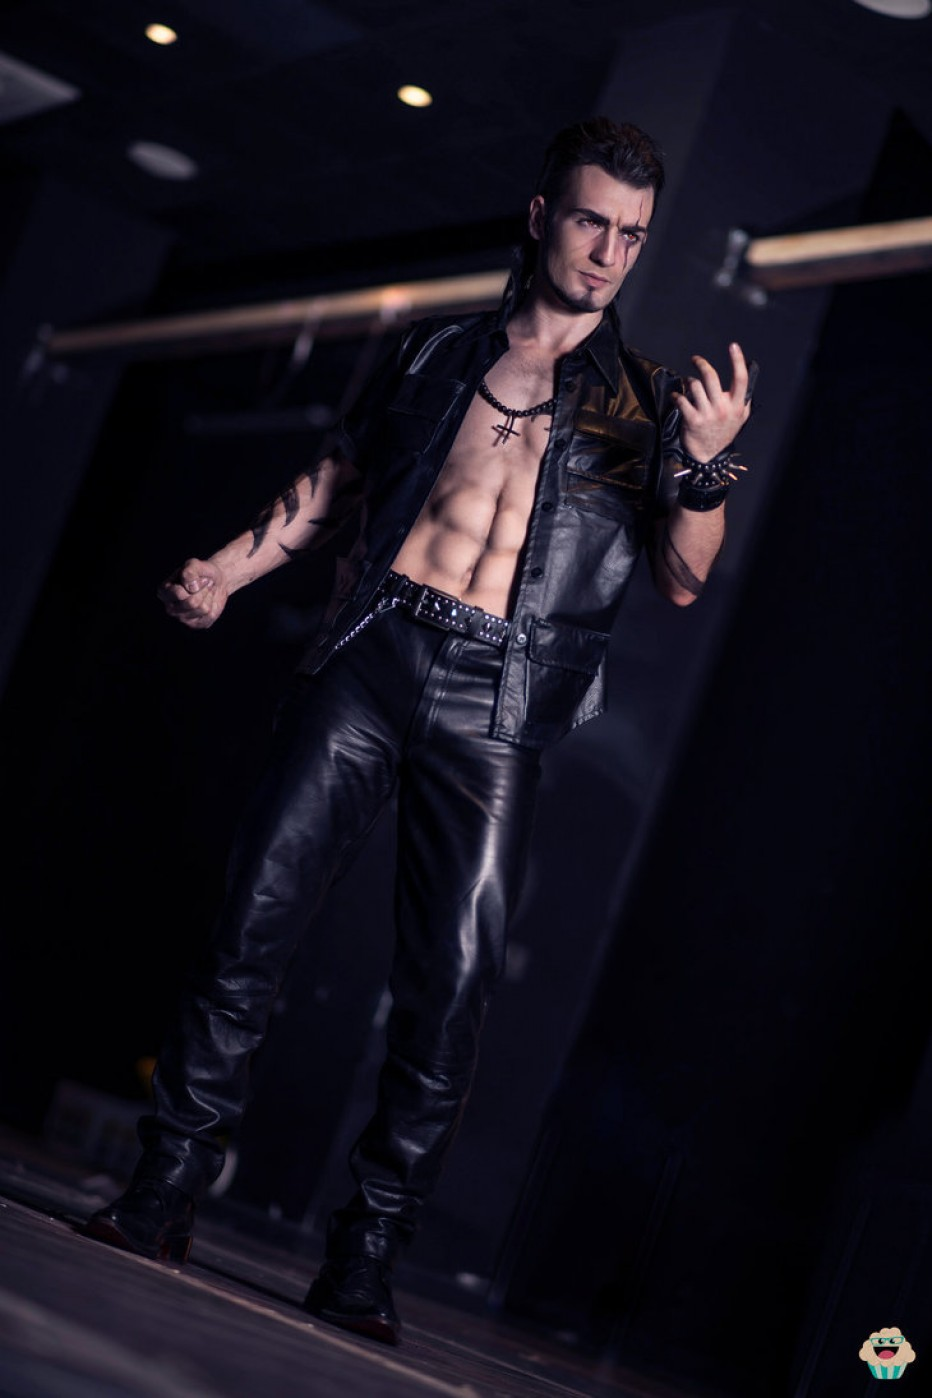 Gladiolus-Amicitia-Final-Fantasy-XV-Cosplay-Gamers-Heroes-4.jpg